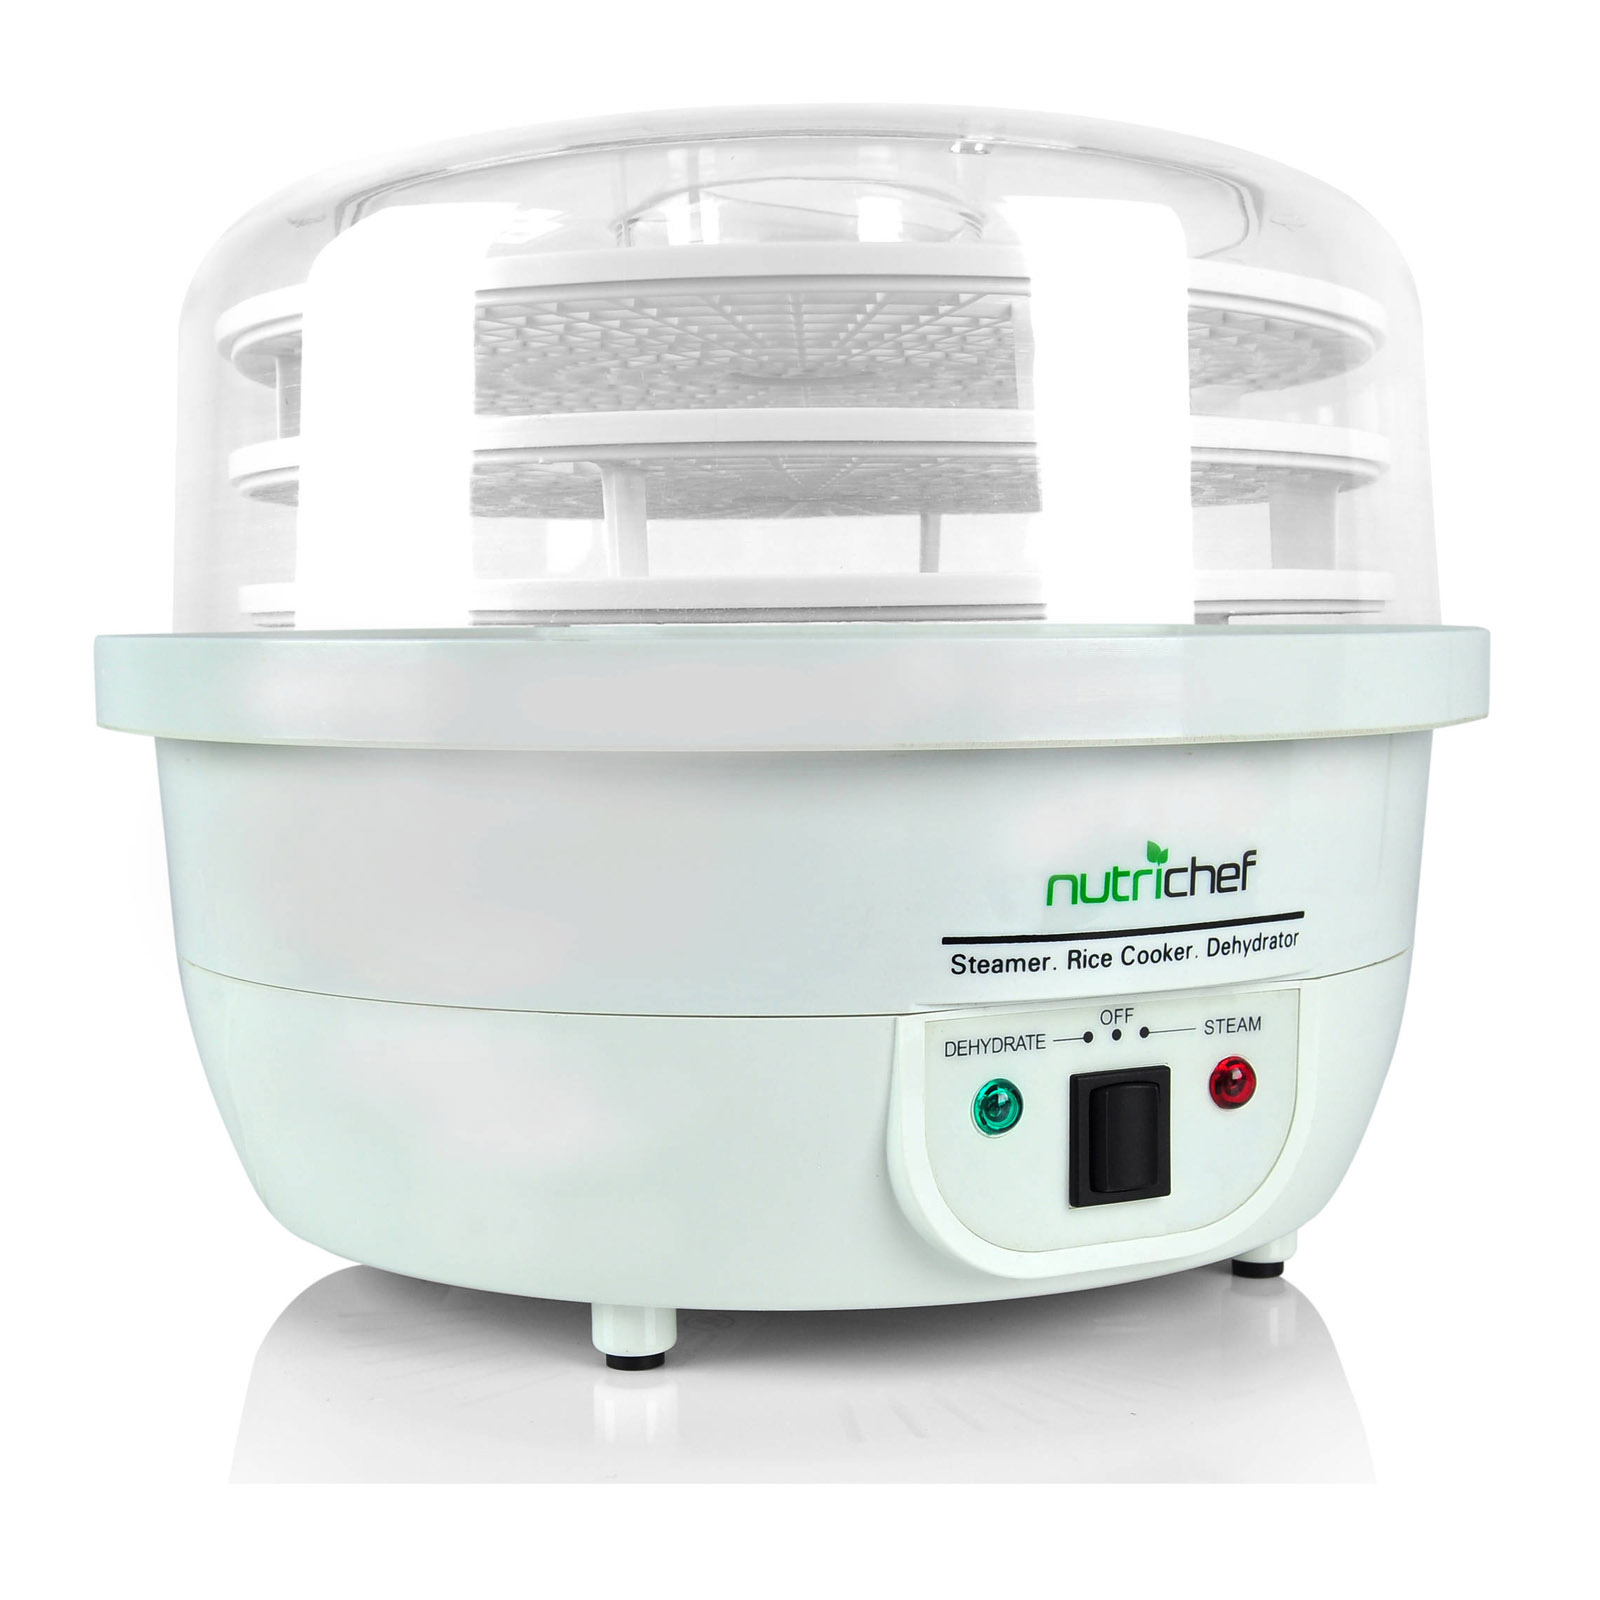 NutriChef 3-in-1 Dehydrator & Steamer Food Cooker - White